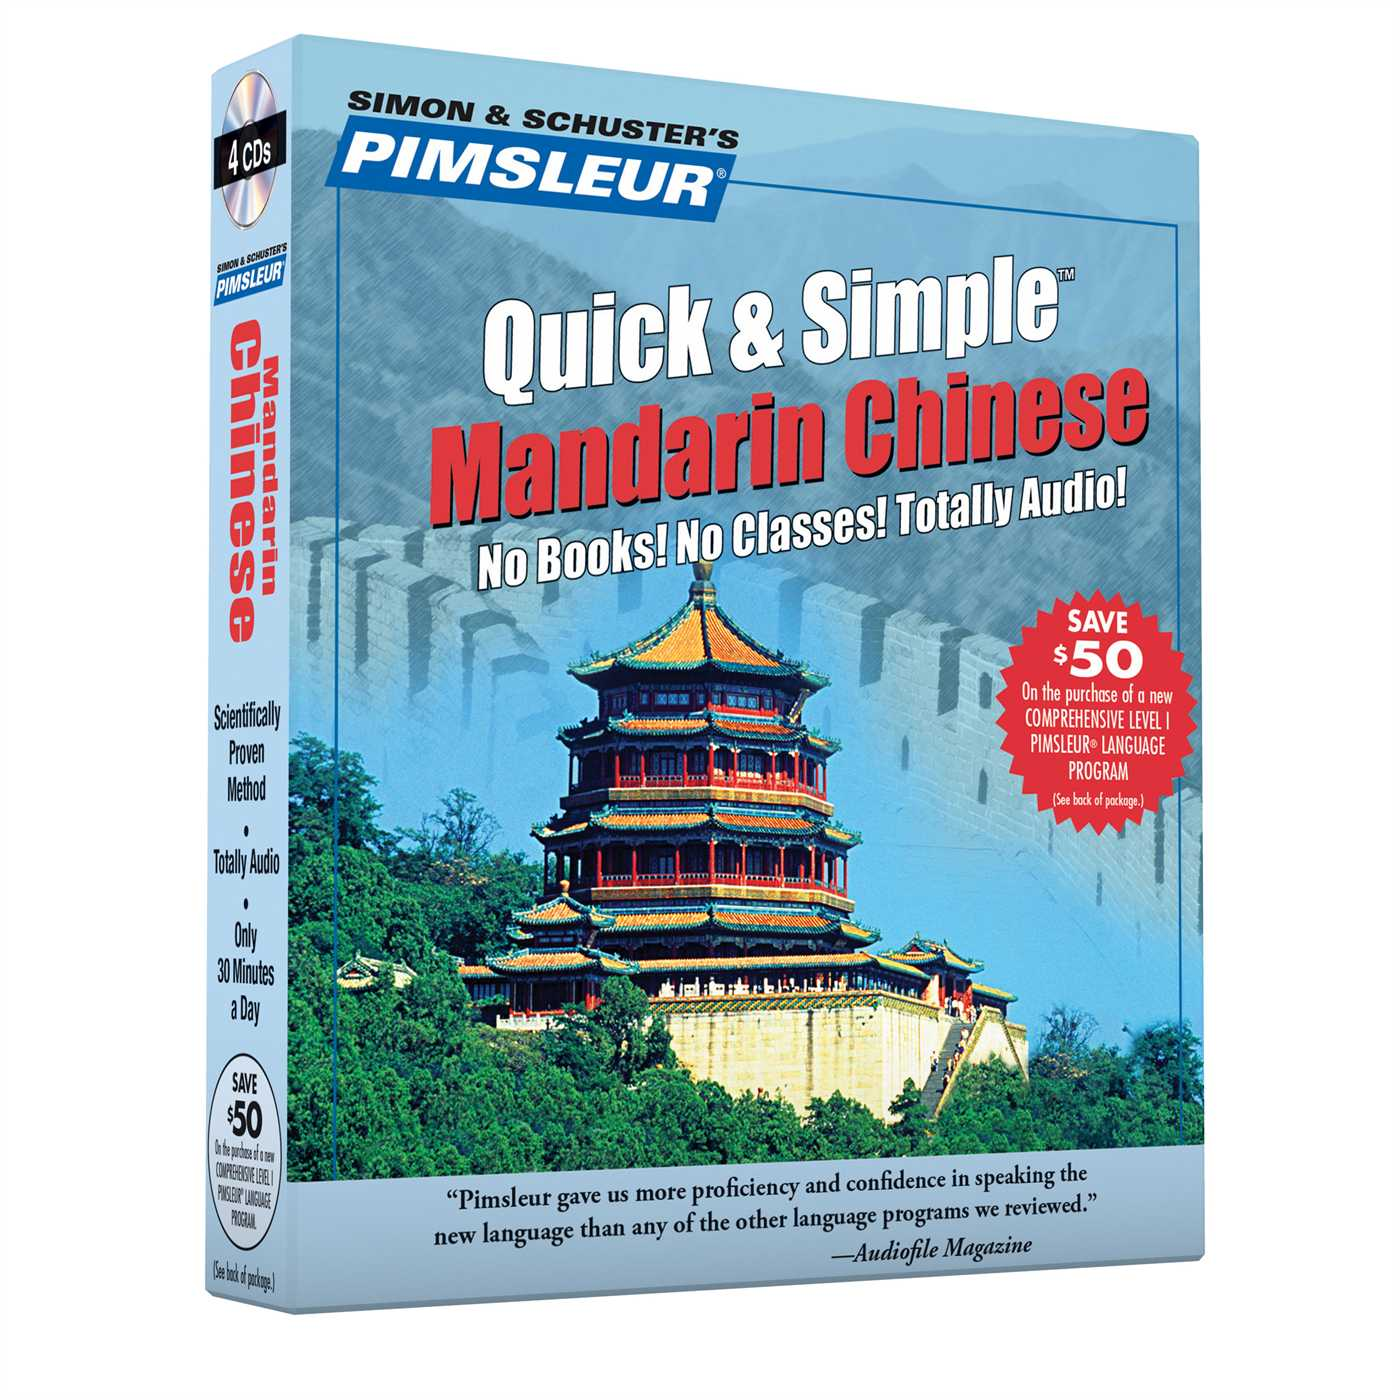 Pimsleur Chinese (Mandarin) Quick & Simple Course - Level 1 Lessons 1-8 CD : Learn to Speak and Understand Mandarin Chinese with Pimsleur Language Programs